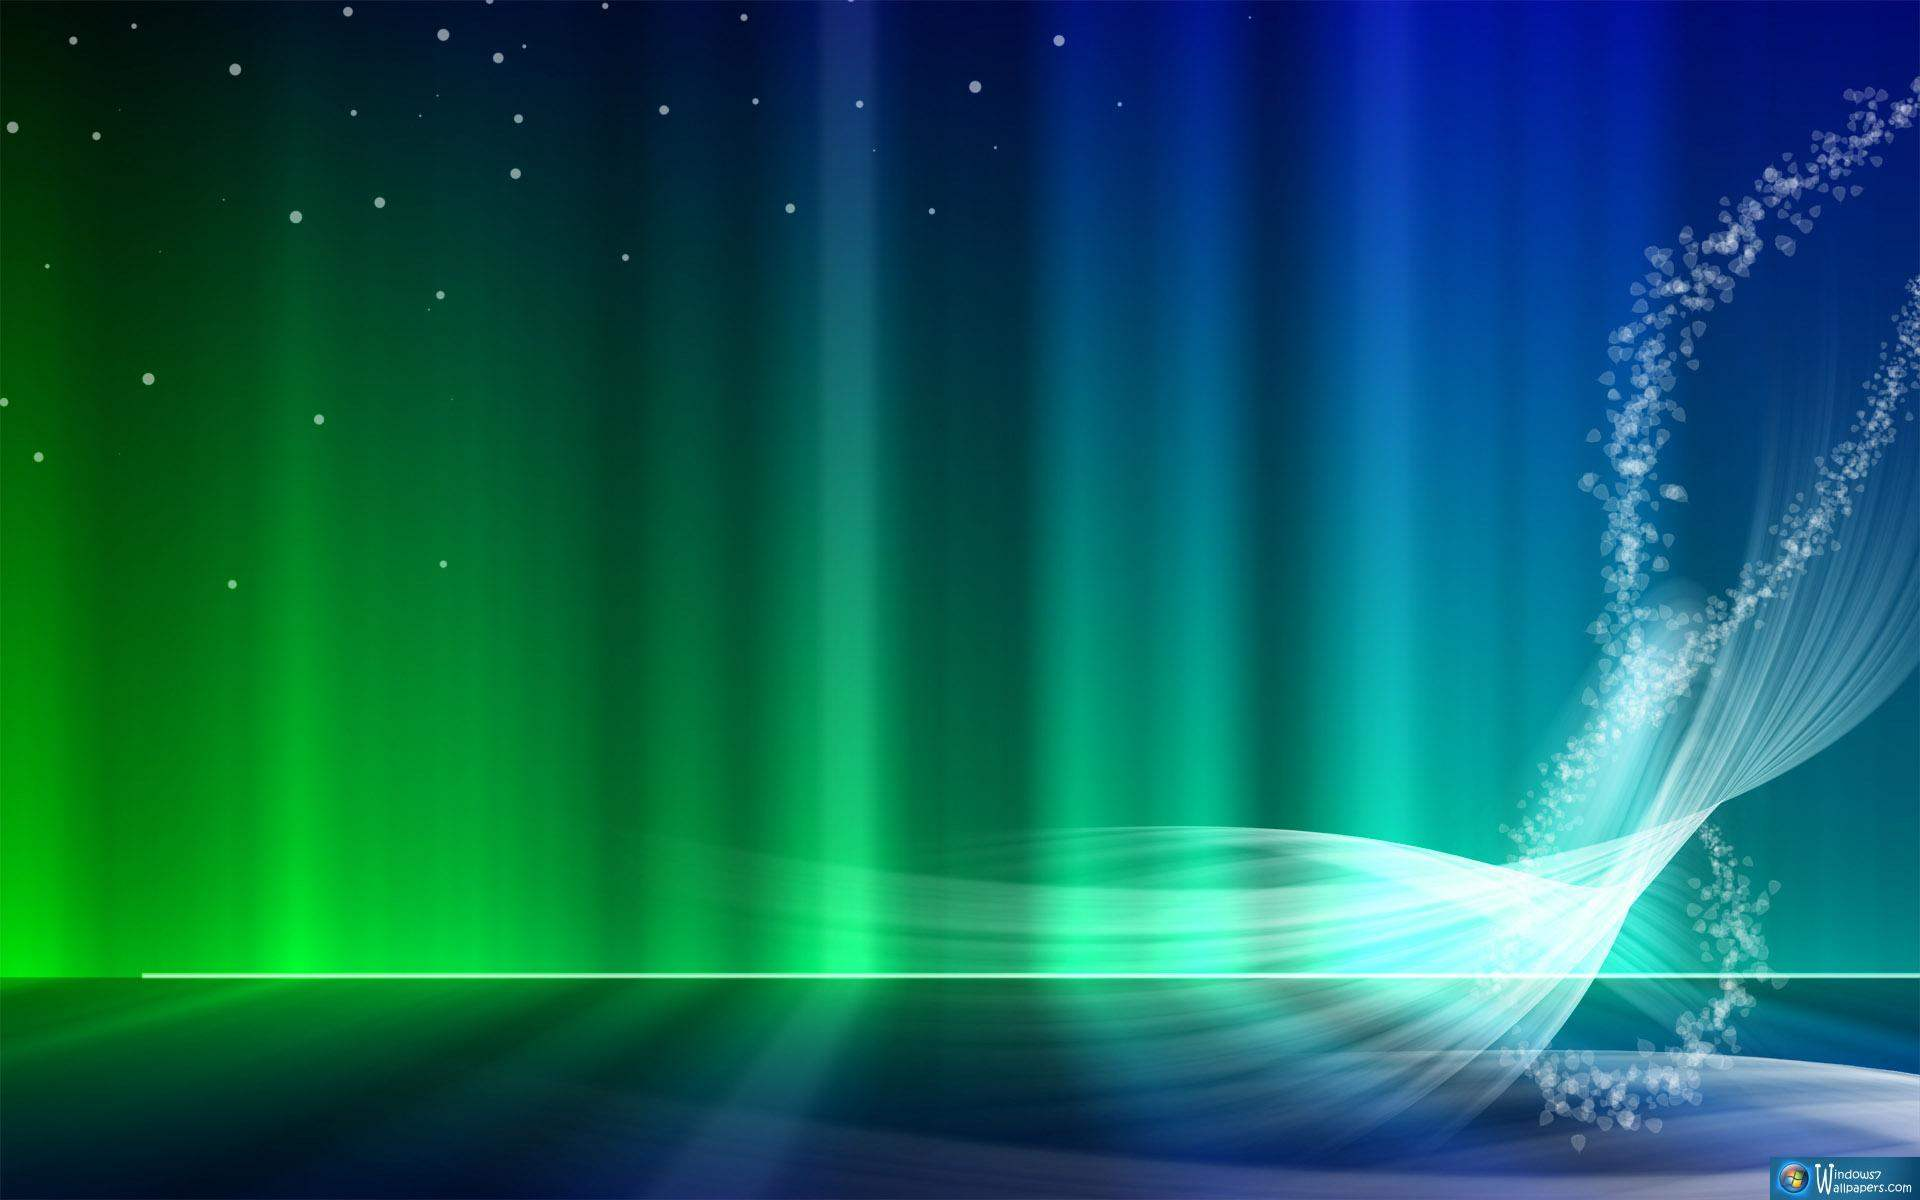 windows 7 desktop wallpaper free download windows 8 wallpaper